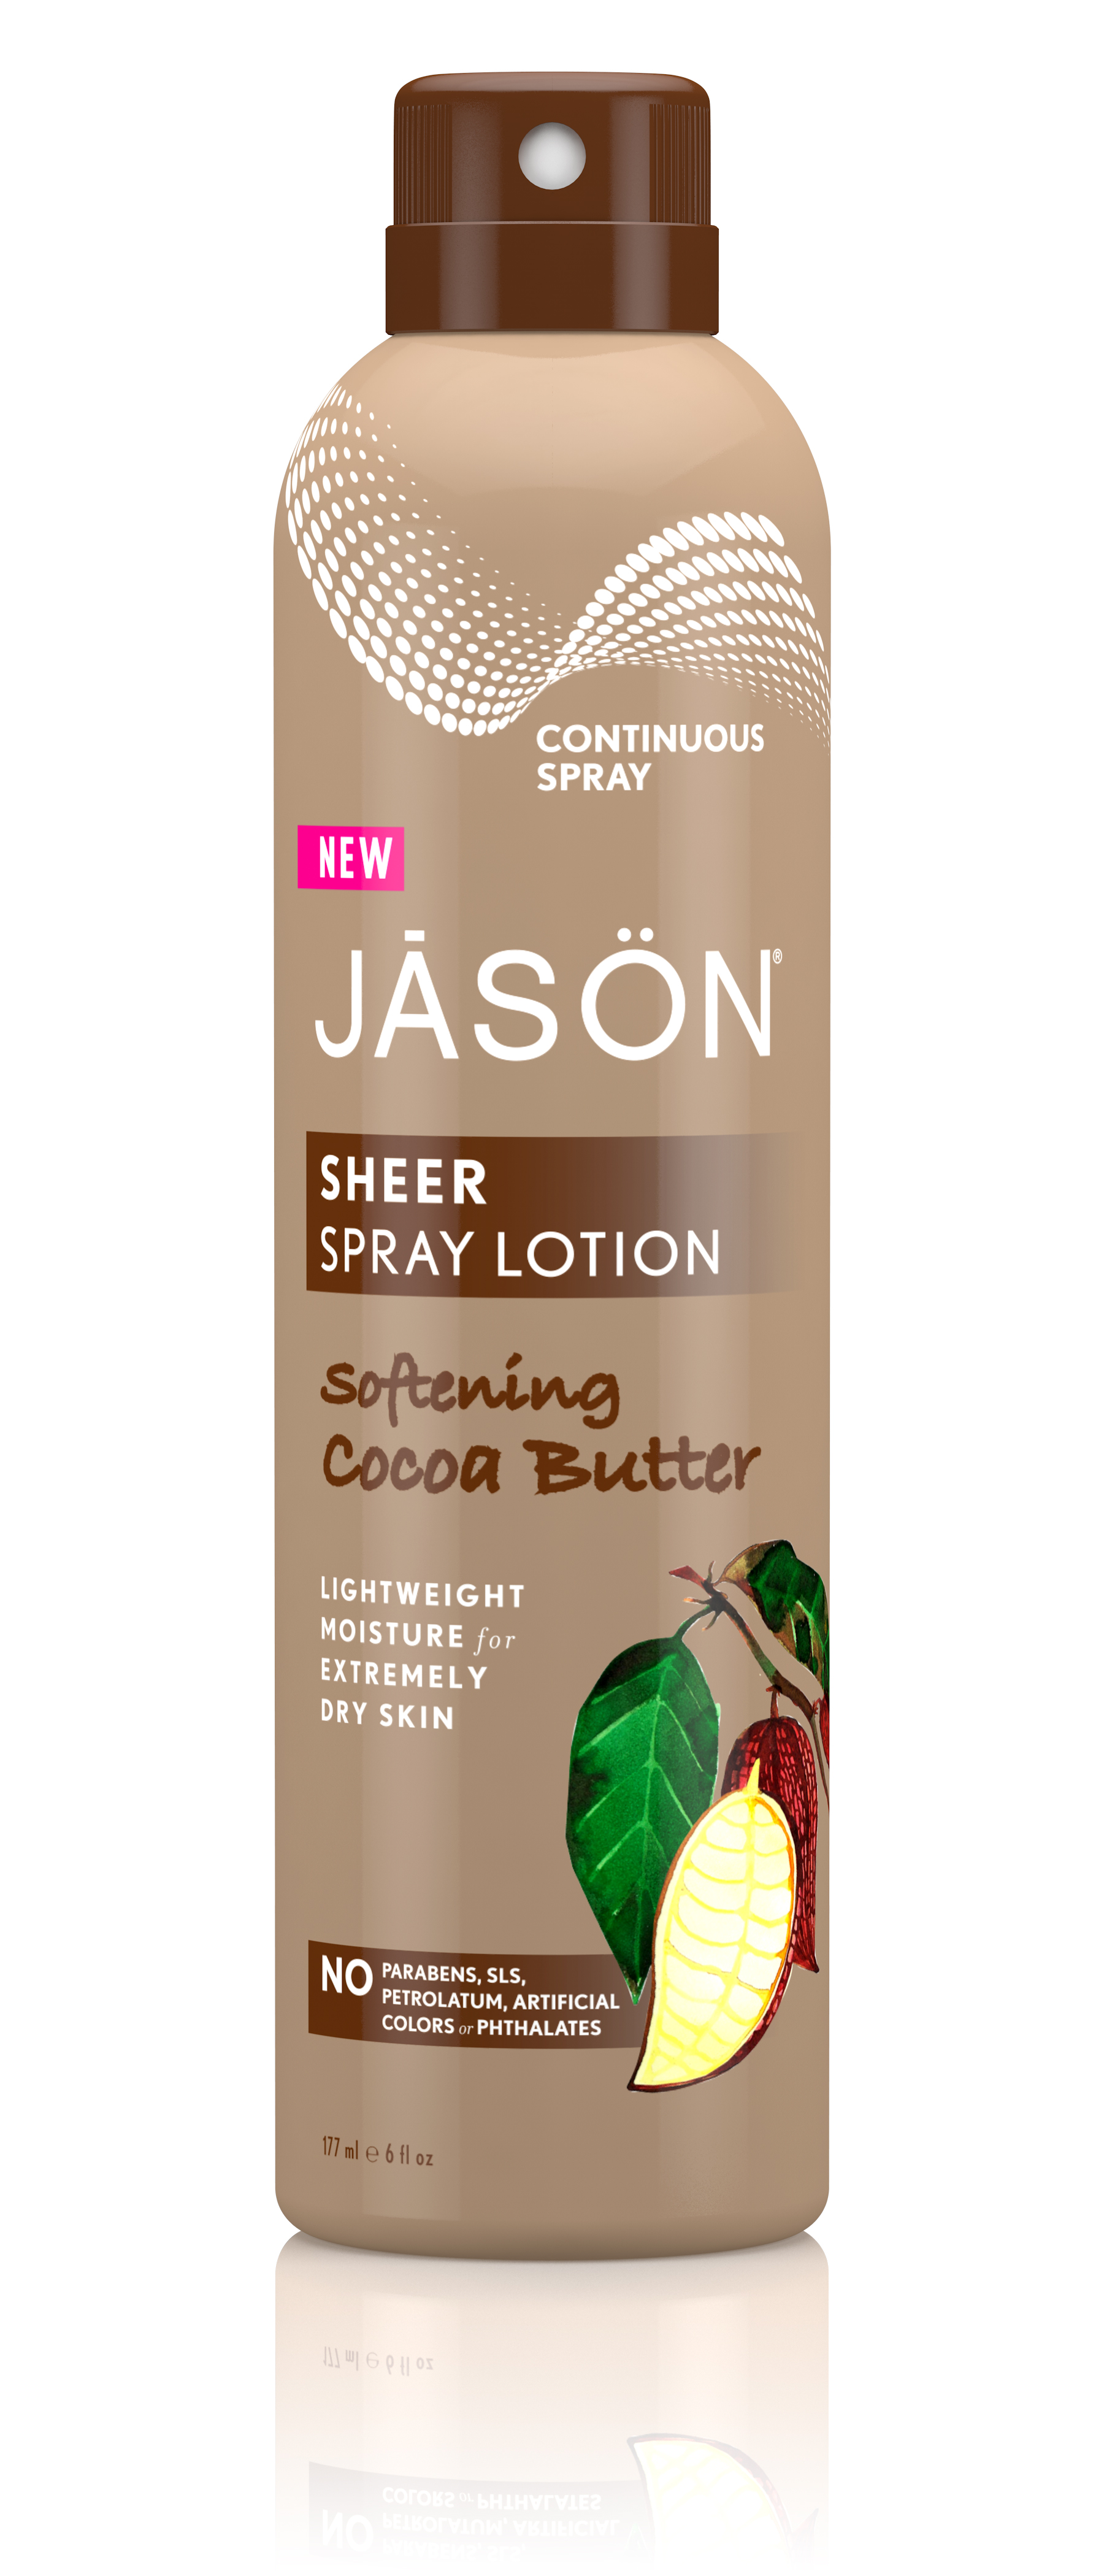 Sheer Spray Lotion Softening Cocoa Butter 177ml